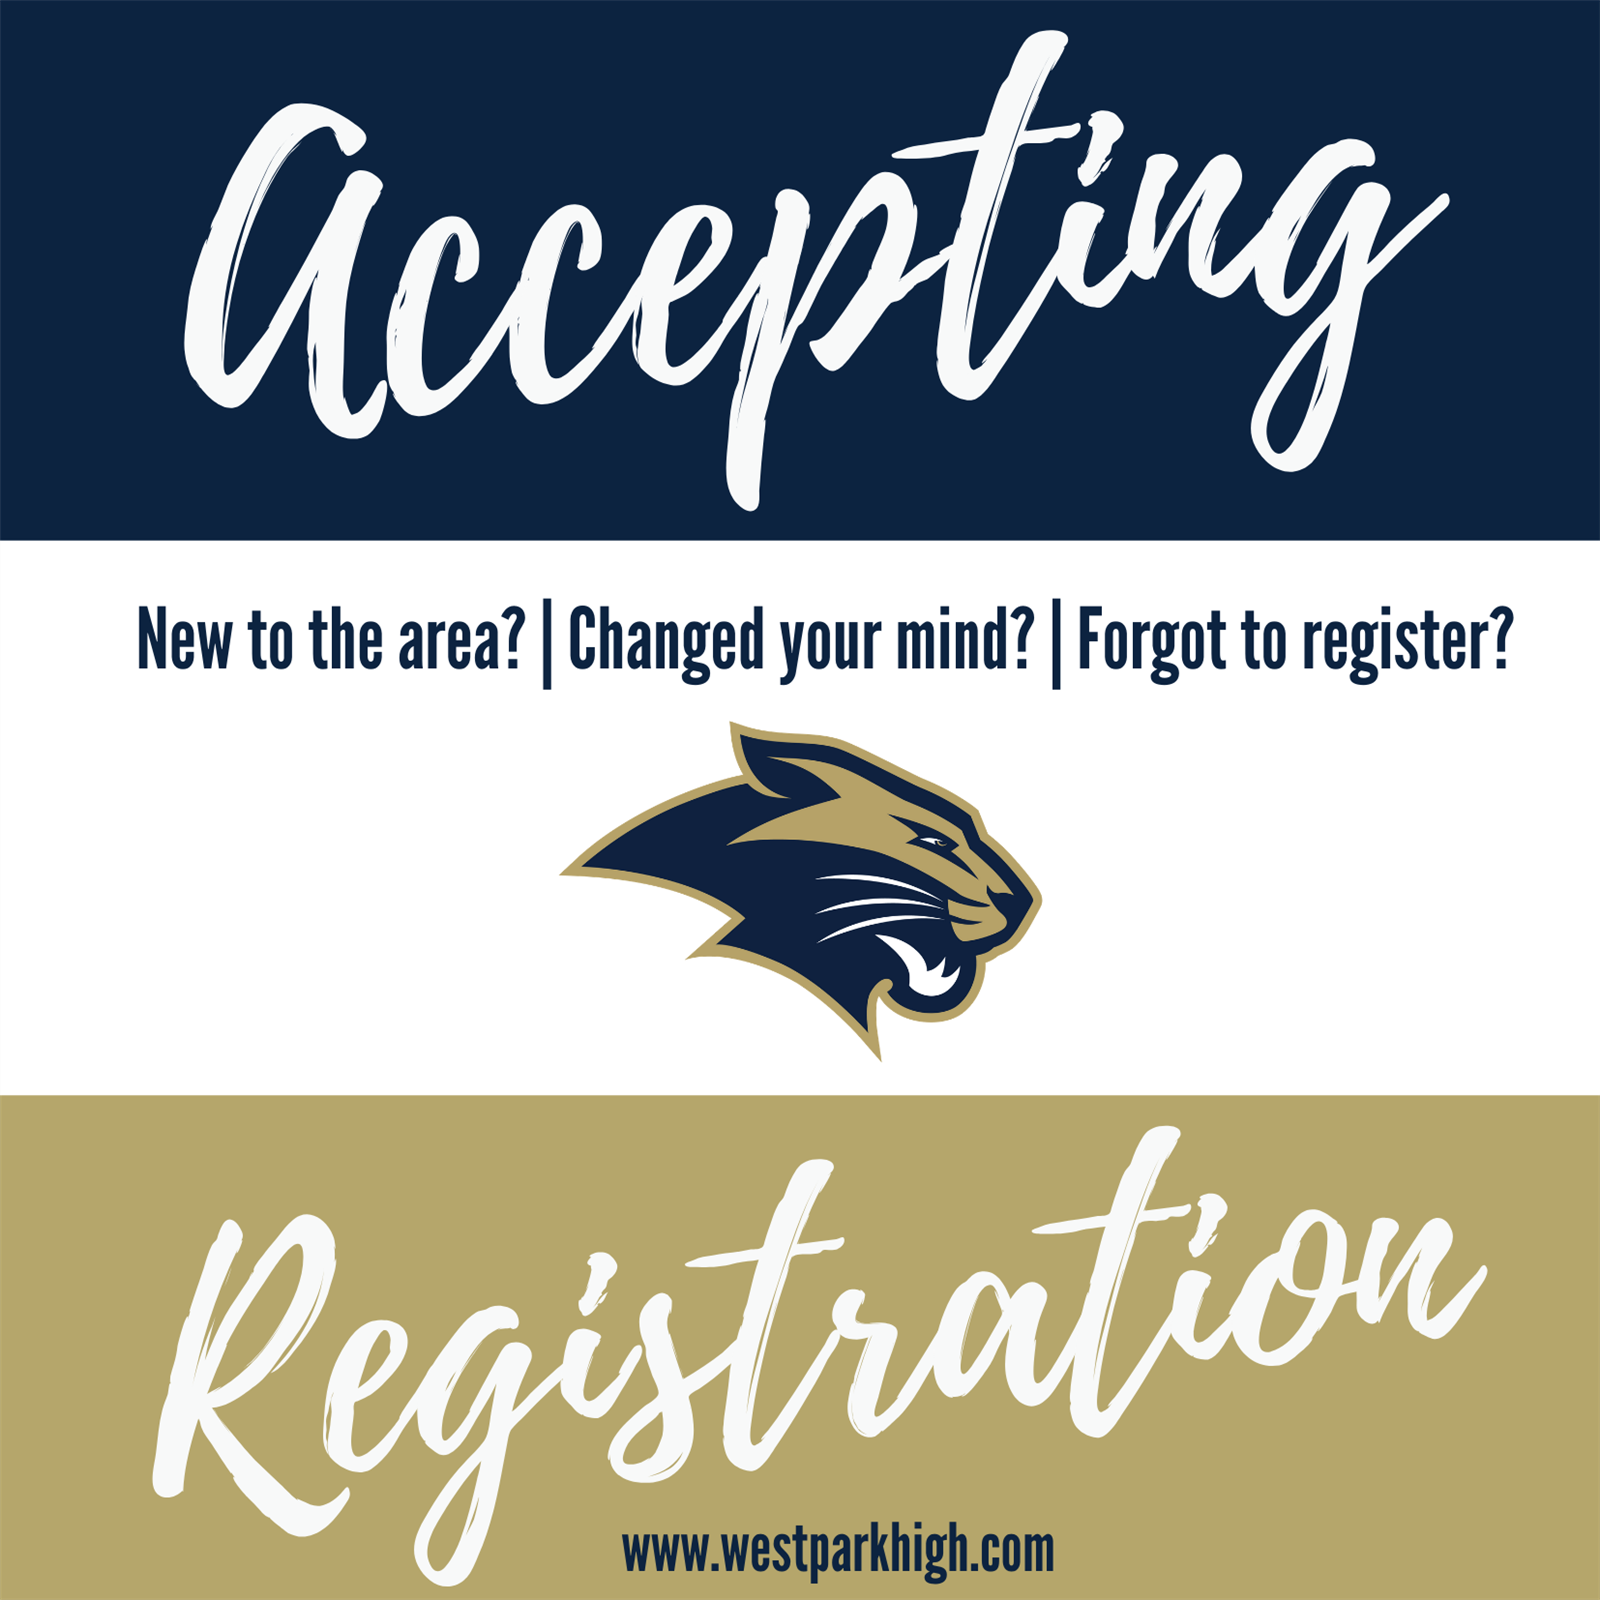 Need to Register?